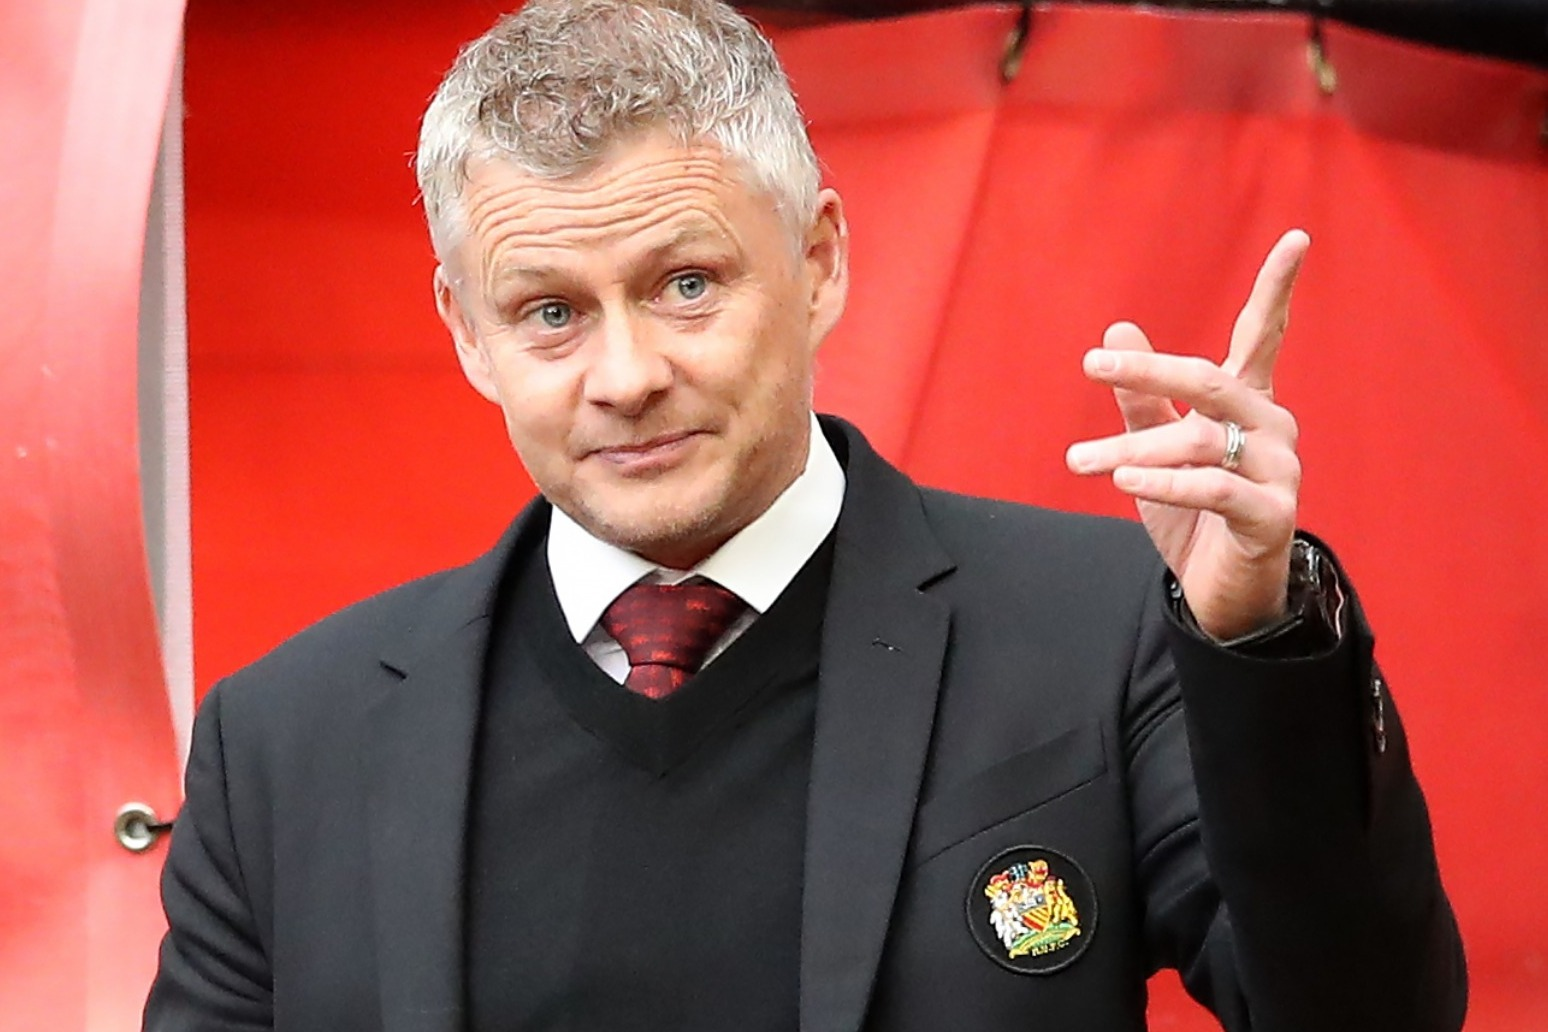 Ole Gunnar Solskjaer says Man United must listen to fans' views ahead of protest